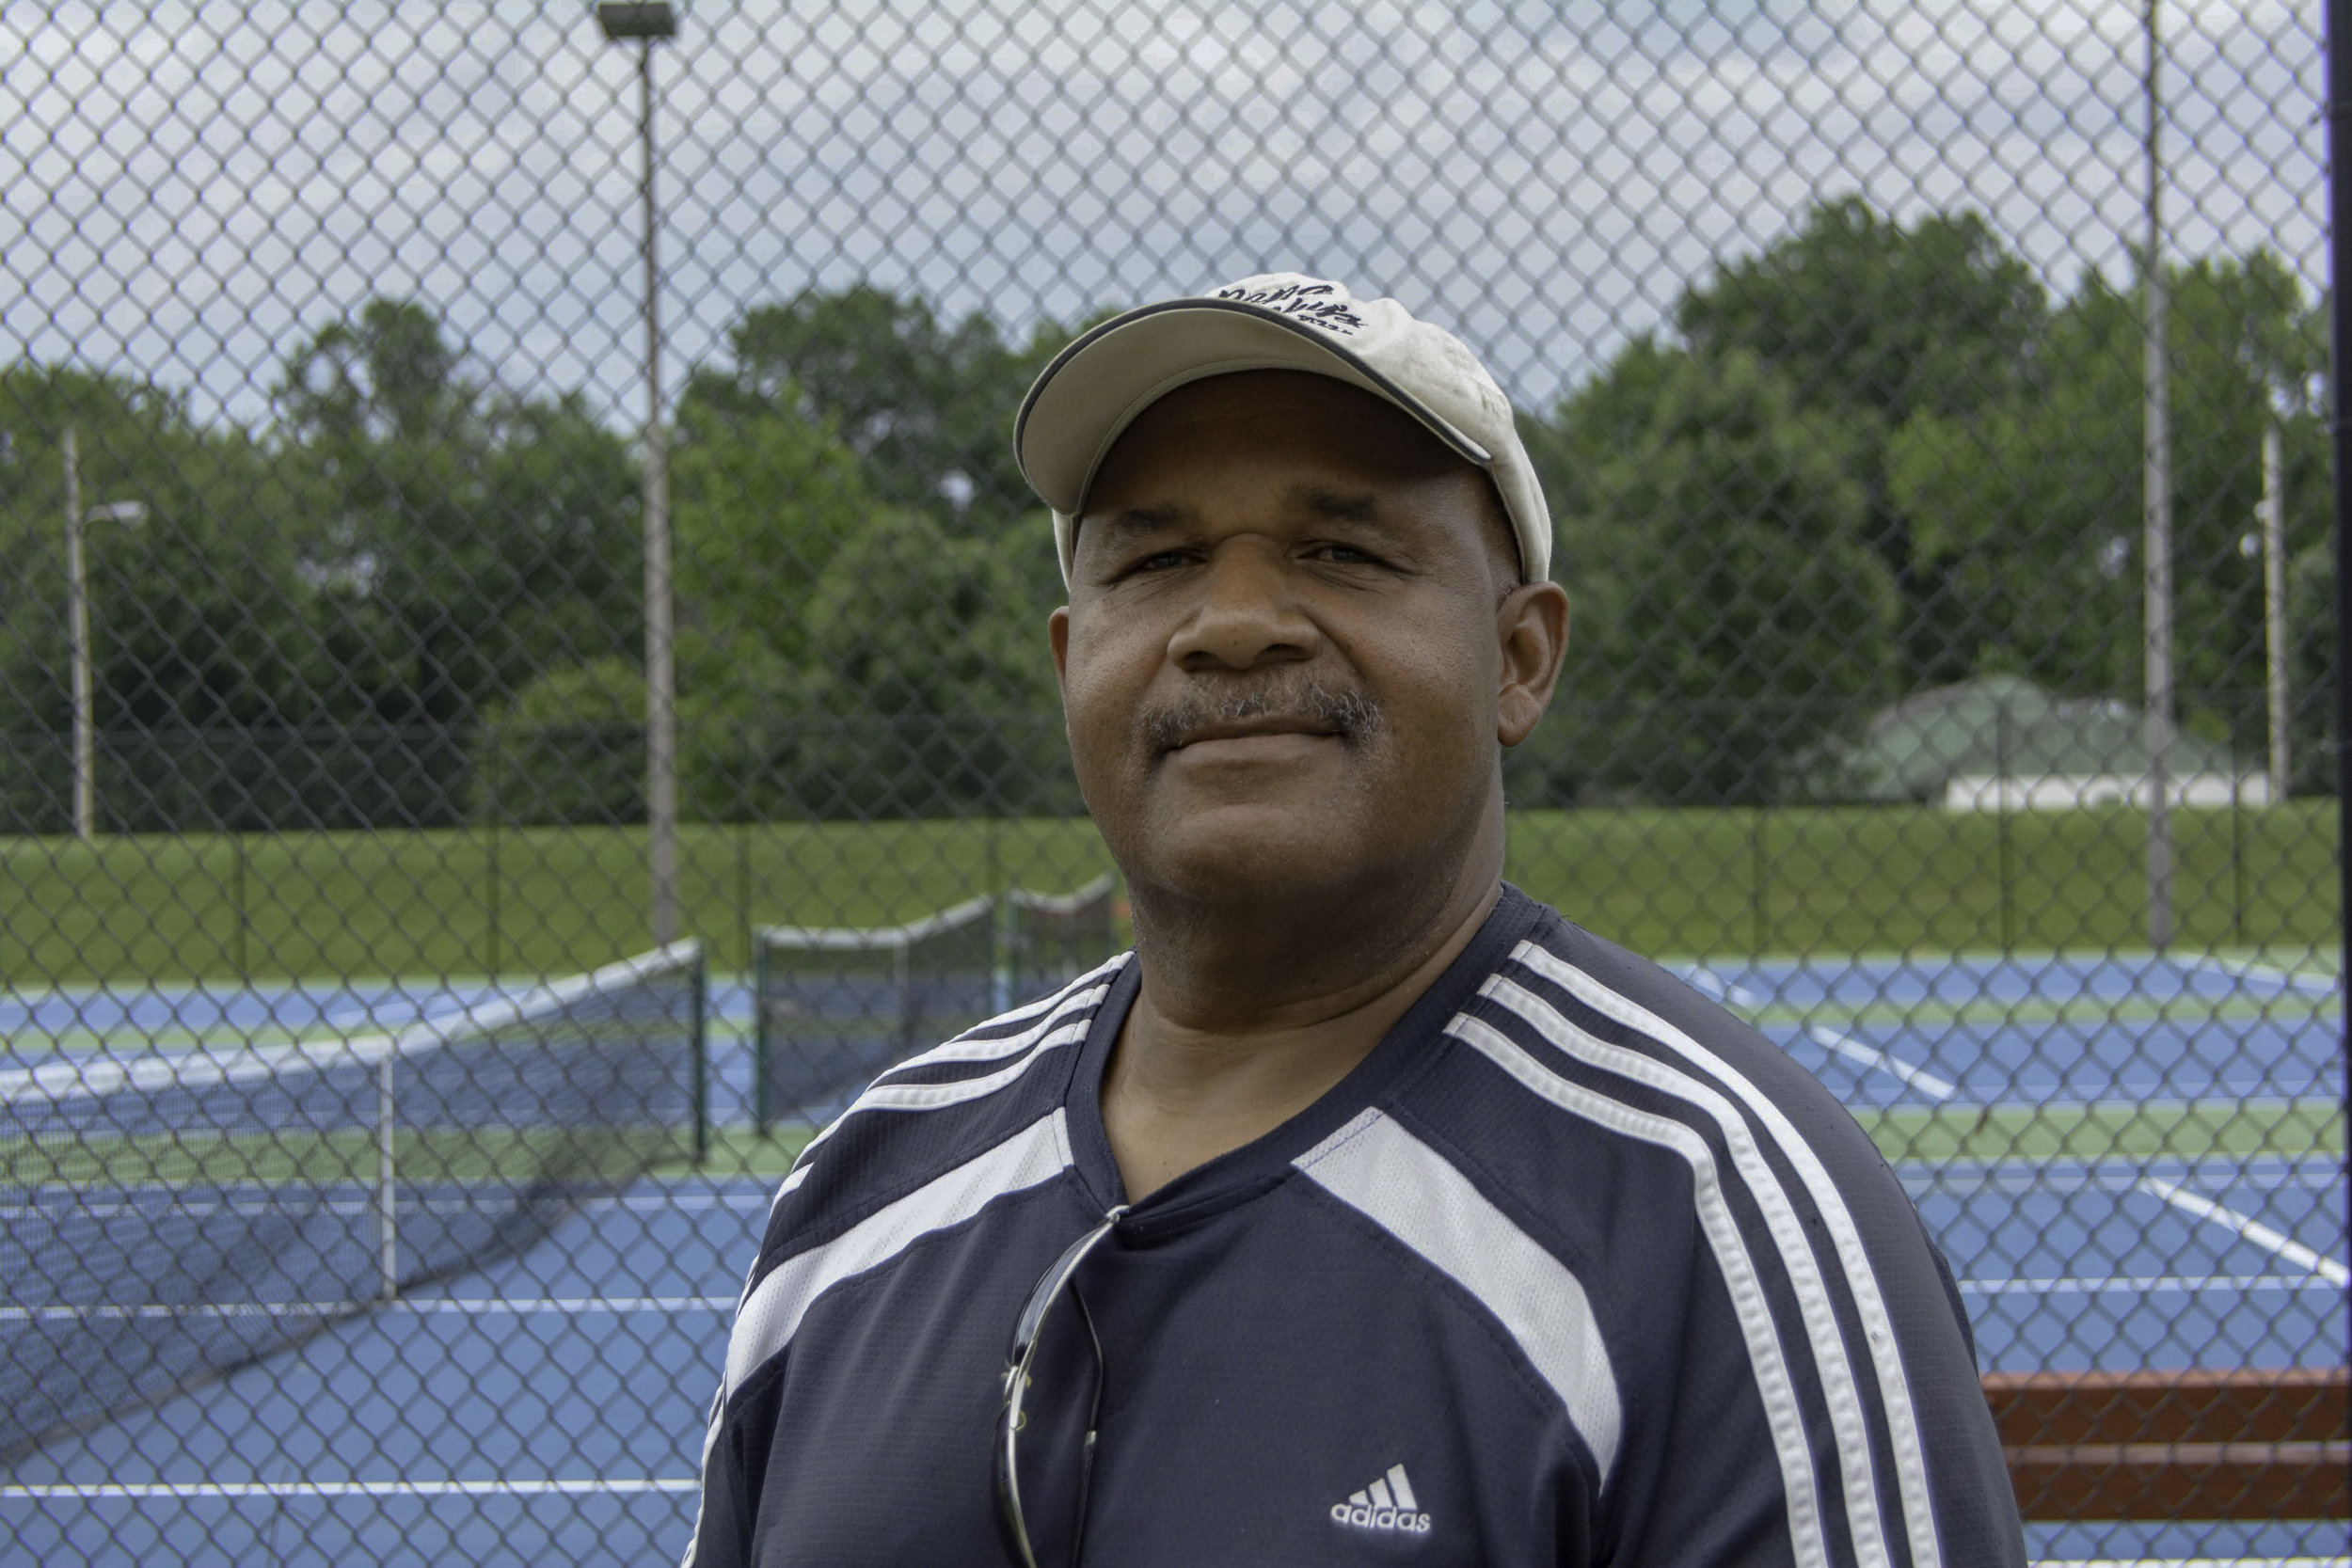 """""""I'm the director of the West Louisville Tennis Club. When we first had our opening day, we had about seventy parents and kids out here. Every Thursday at six o'clock, we have free tennis lessons. We're a non profit organization that plays tennis here and have been here for decades. We travel to different cities to play other clubs, too.  As of today, there are only two blacks who were inducted into the Kentucky Tennis Hall of Fame and that's Arthur Lloyd Johnson and my friend Bruce Stone. That's part of the legacy of the West Louisville Tennis Club.  I'm a certified tennis coach and I work for the United States Tennis Association. That's the same organization that pays Venus and Serena Williams. We have a chapter here called the USTA of Kentucky. I've been in different schools, targeting the areas that's not exposed to tennis. So, we've been to all of the West End schools trying to expose African American youth to tennis.  This is the home court for St. Francis and Central High School. It's been a decade since Central's had a tennis team, so it's been pretty good for the community. Hopefully, we can continue this venture with the community, exposing kids to another sport. Not only that, we're just trying to help raise kids in the community.  My brother, Frank, introduced me to tennis. He really got excited with Arthur Ashe won the Wimbledon in 1975. He went out and bought a couple of rackets and I didn't have a choice but to come out and play with him. He taught me how to play. That was in the mid-seventies and I've been playing ever since. As the years went by, I realized that it's one of those sports that you can play in your seventies and eighties. I had a cousin that played until he was 83 years old. It's one of those sports that gets under your skin and you can't help it. You can't play basketball and football forever.  We do a lot of fellowshipping and having fun out here. Plus, you get to stay in some type of shape. It's a lot of fun. We have tournaments whe"""